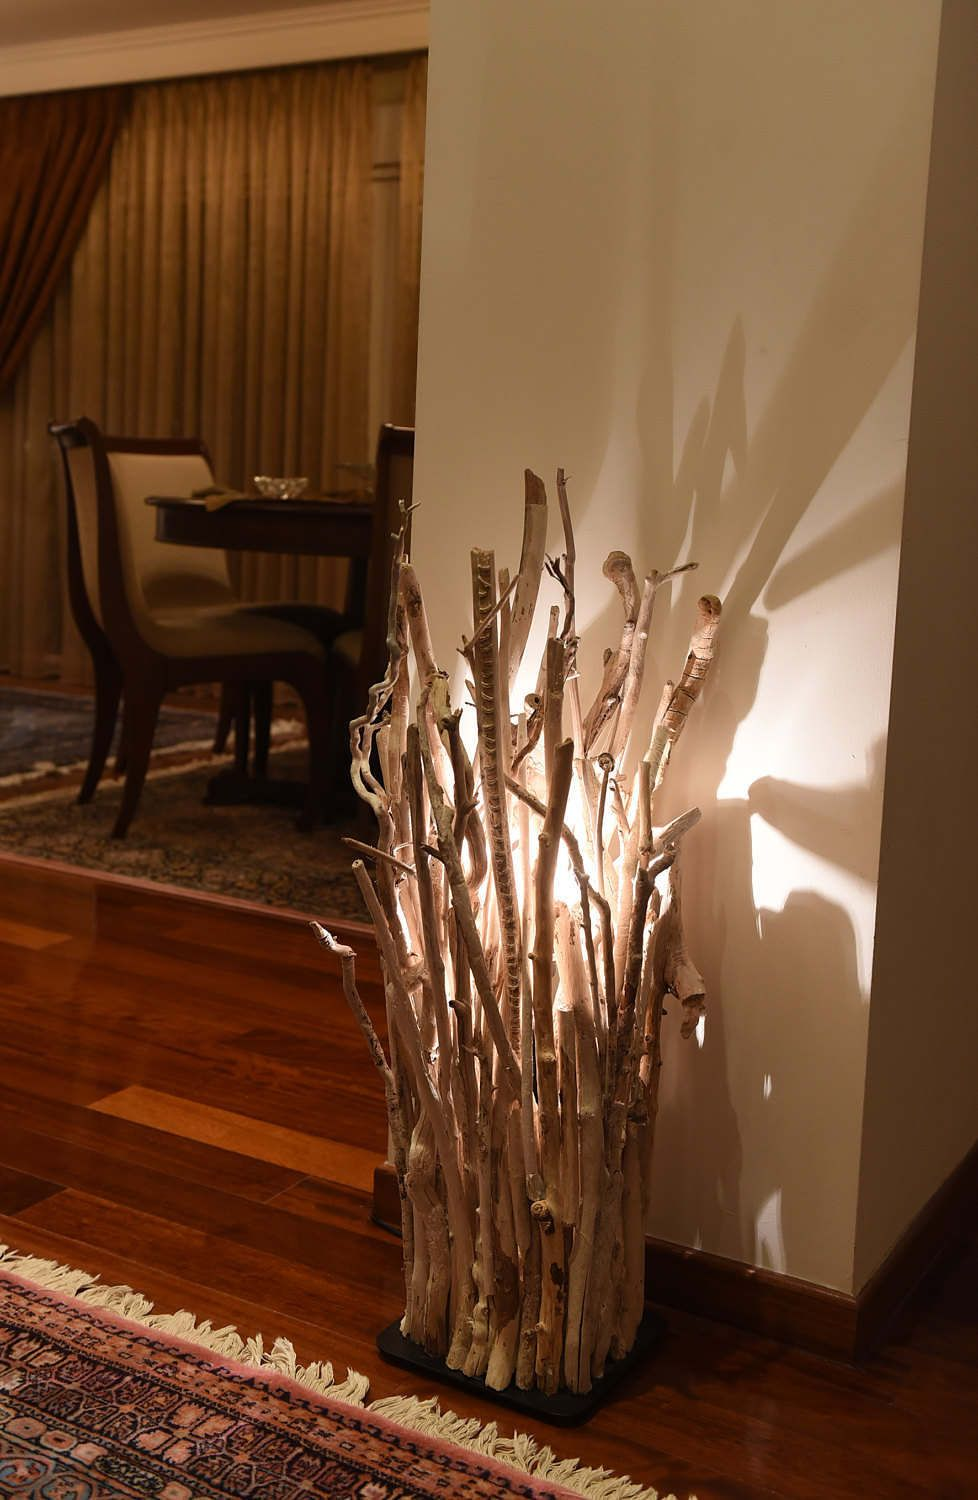 This Magnificent Driftwood Floor Lamp Brings The Ocean And Nature S Beauty Inside Your Home With Its Exquisite Stylish Design Is In Harmony Every